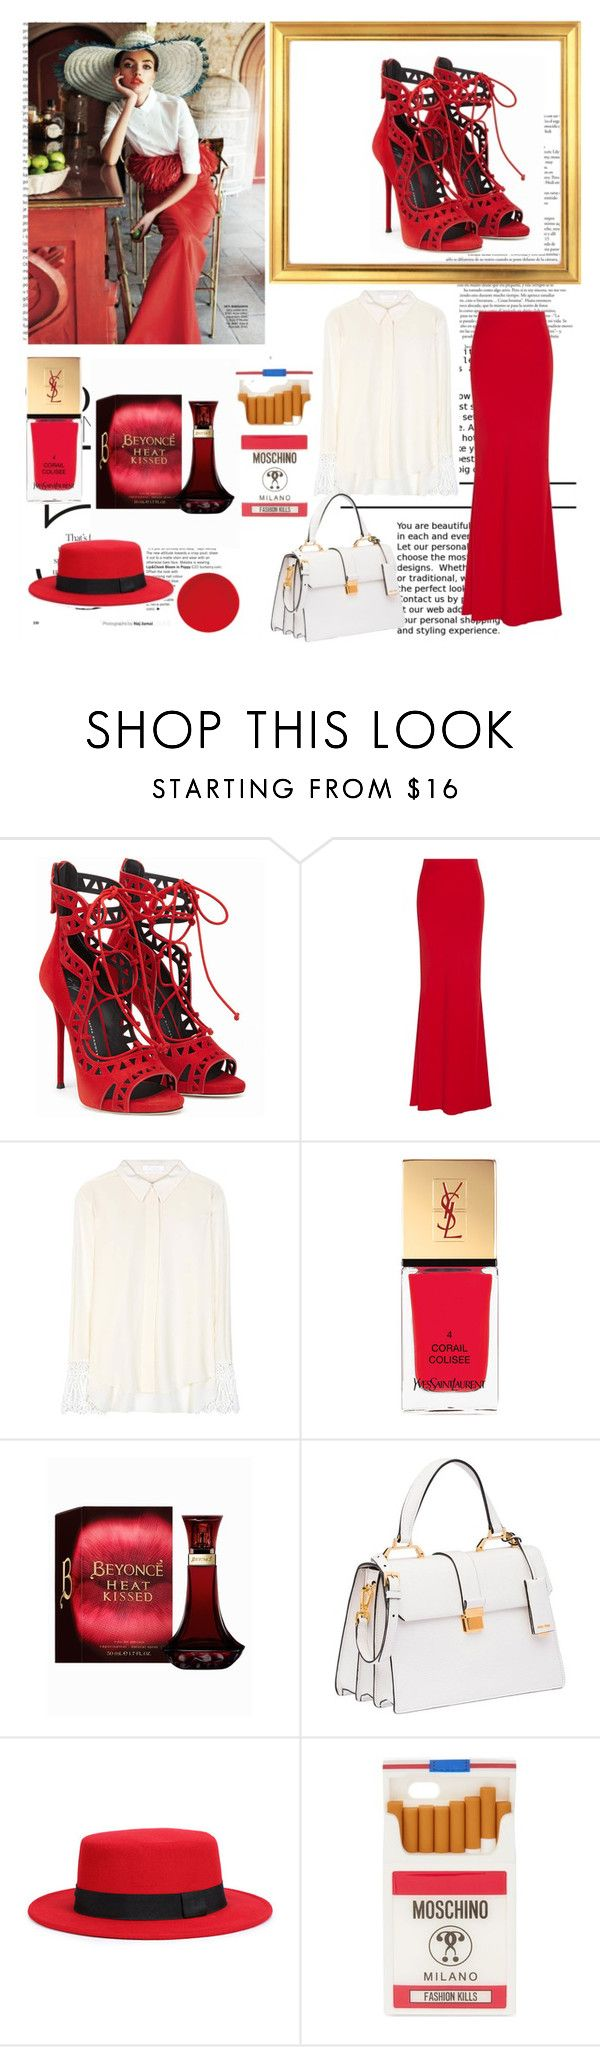 """""""red love"""" by renesmi ❤ liked on Polyvore featuring Oris, Nicole, Alexander McQueen, Chloé, Yves Saint Laurent, Miu Miu, WithChic, Moschino, red and alinabaikova"""